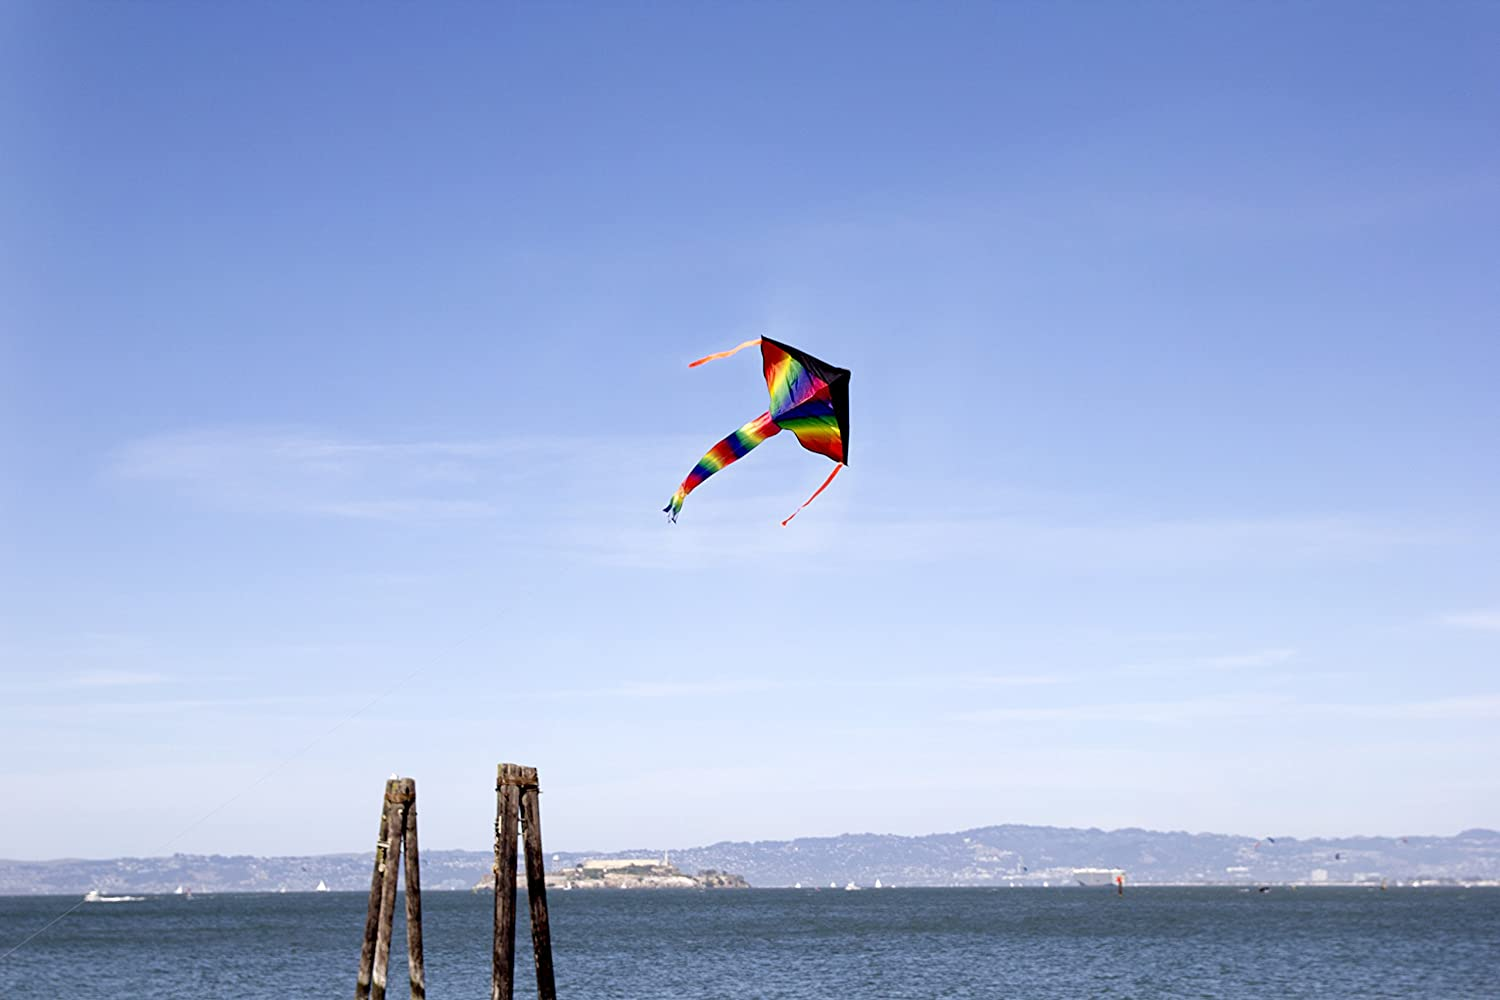 Beginners and Pros Adults Great for Beach Use Premium Quality by Impresa BHBUSAZIN025486 Kids Large Rainbow Delta Kite The Best Kite for Everyone Fly Boys Girls Launch Easy to Assemble